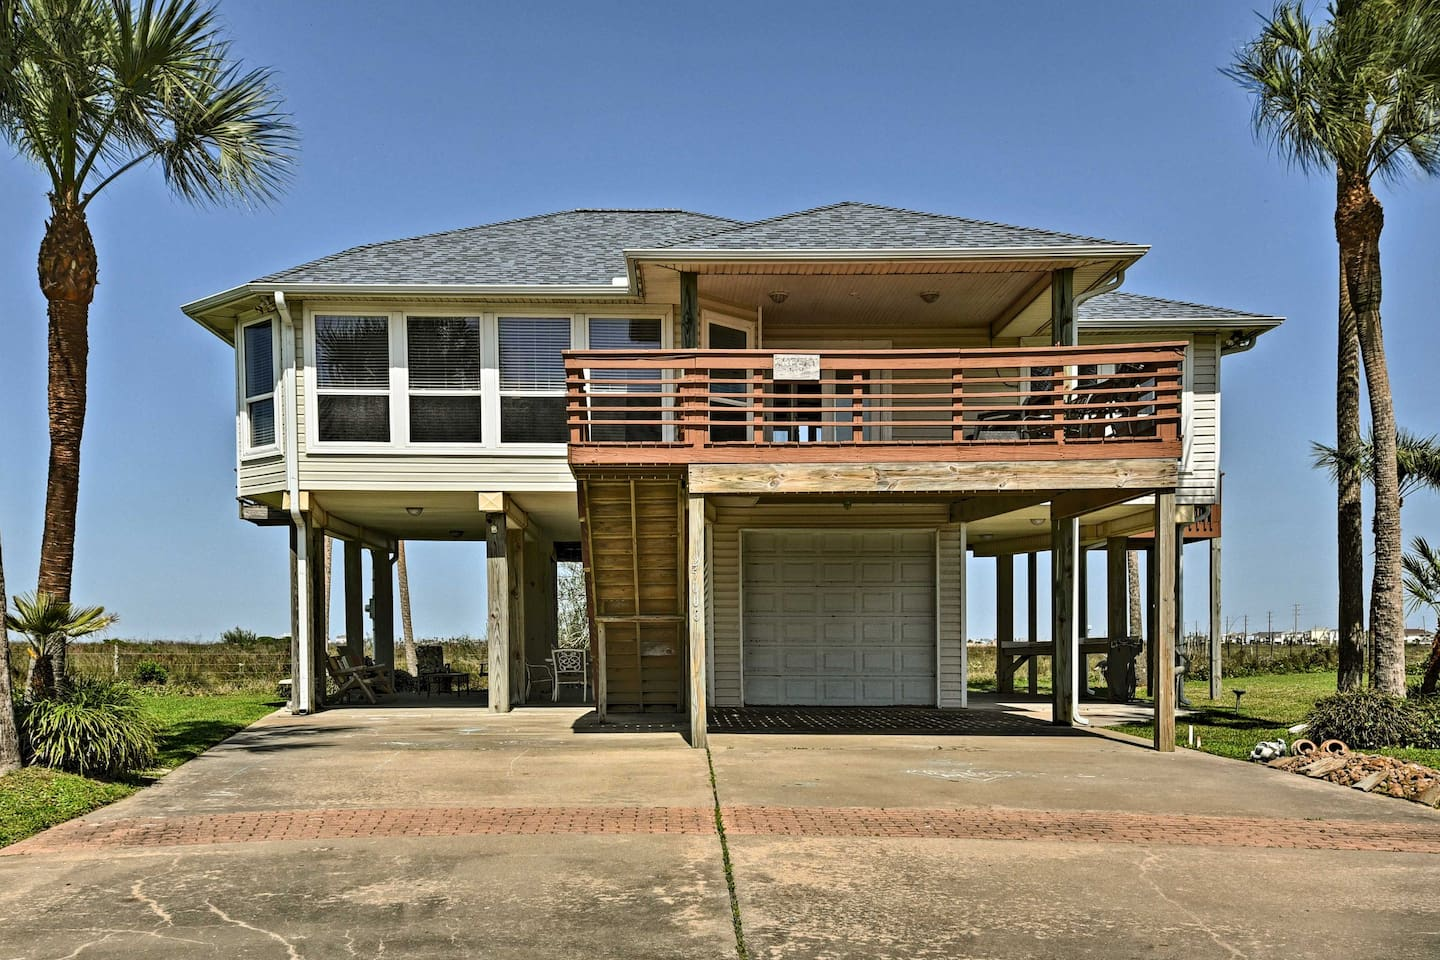 Your ocean retreat awaits at 'Breezy V', a Galveston vacation rental house.